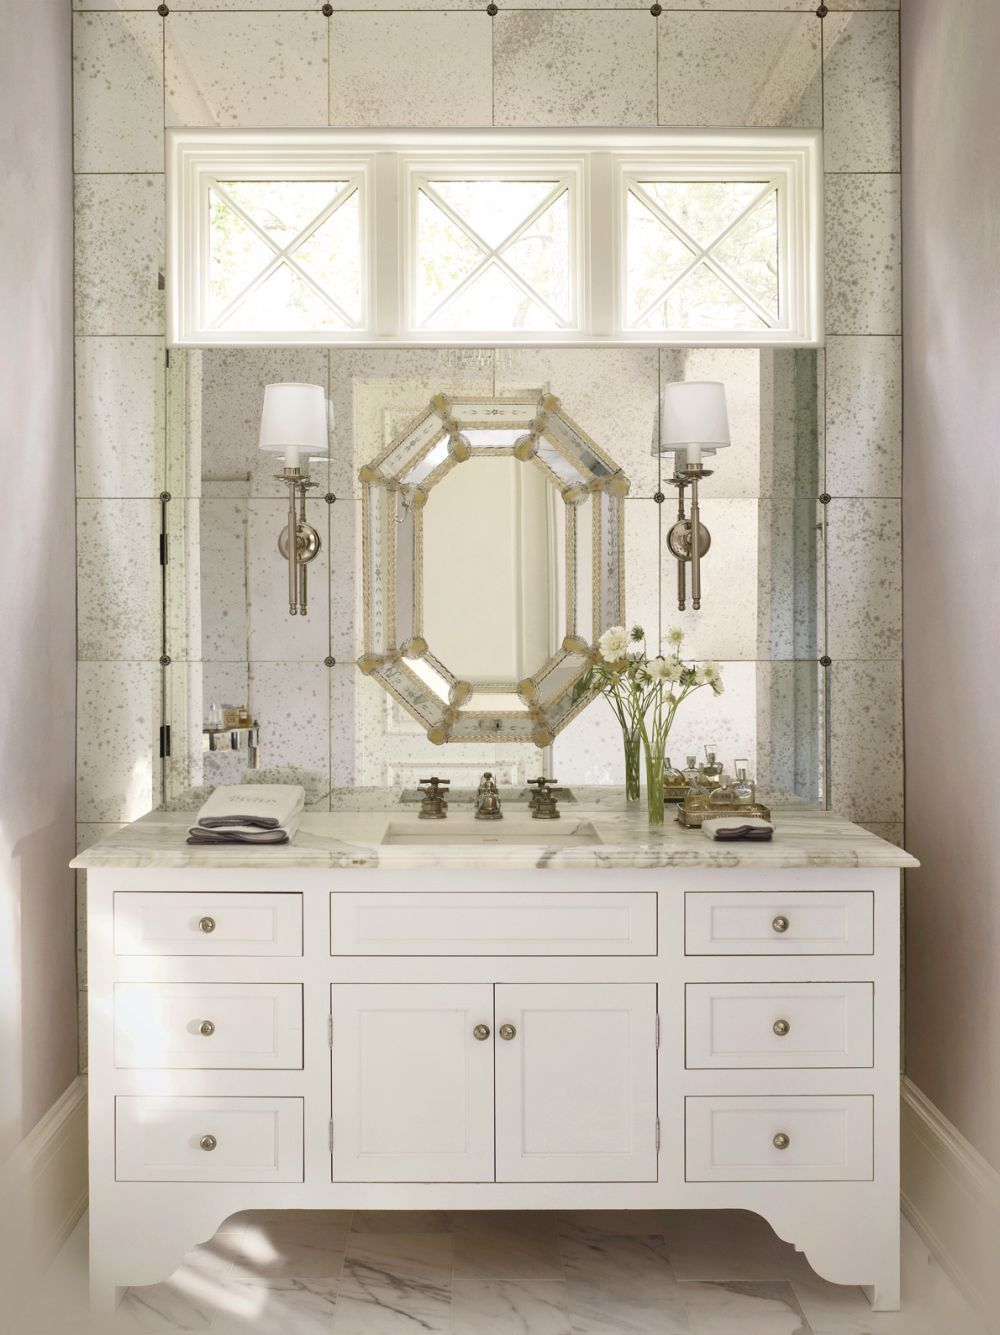 Beautiful bathroom design featuring stunning Venetian Murano glass mirror on  the background of antiqued mirrored wall. bathroom design with Venetian Murano glass mirror  Venetian